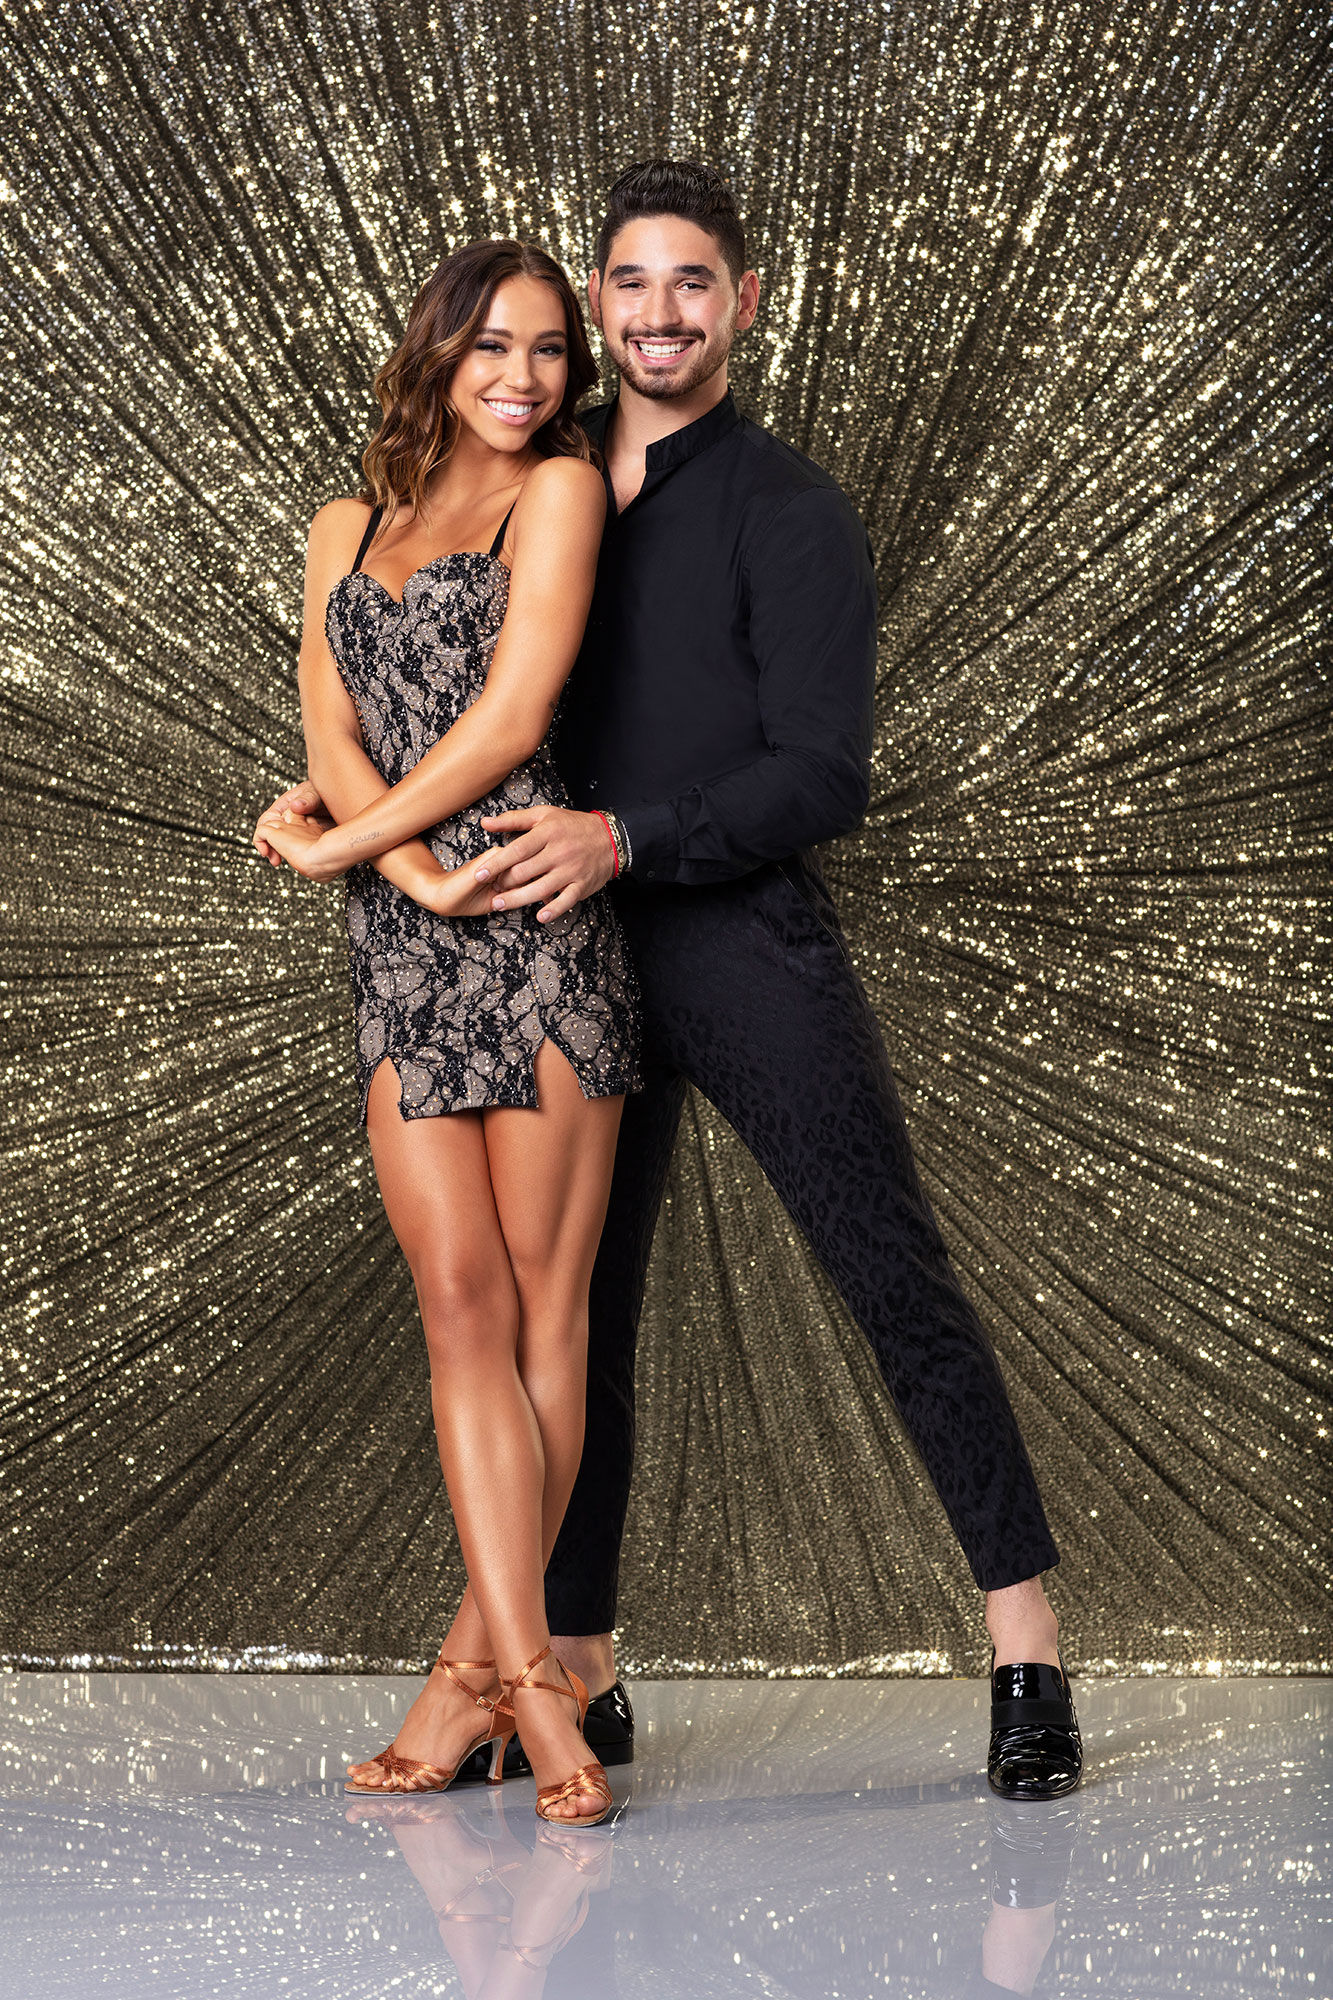 Cbs survivor couples dating on dwts is val & maks